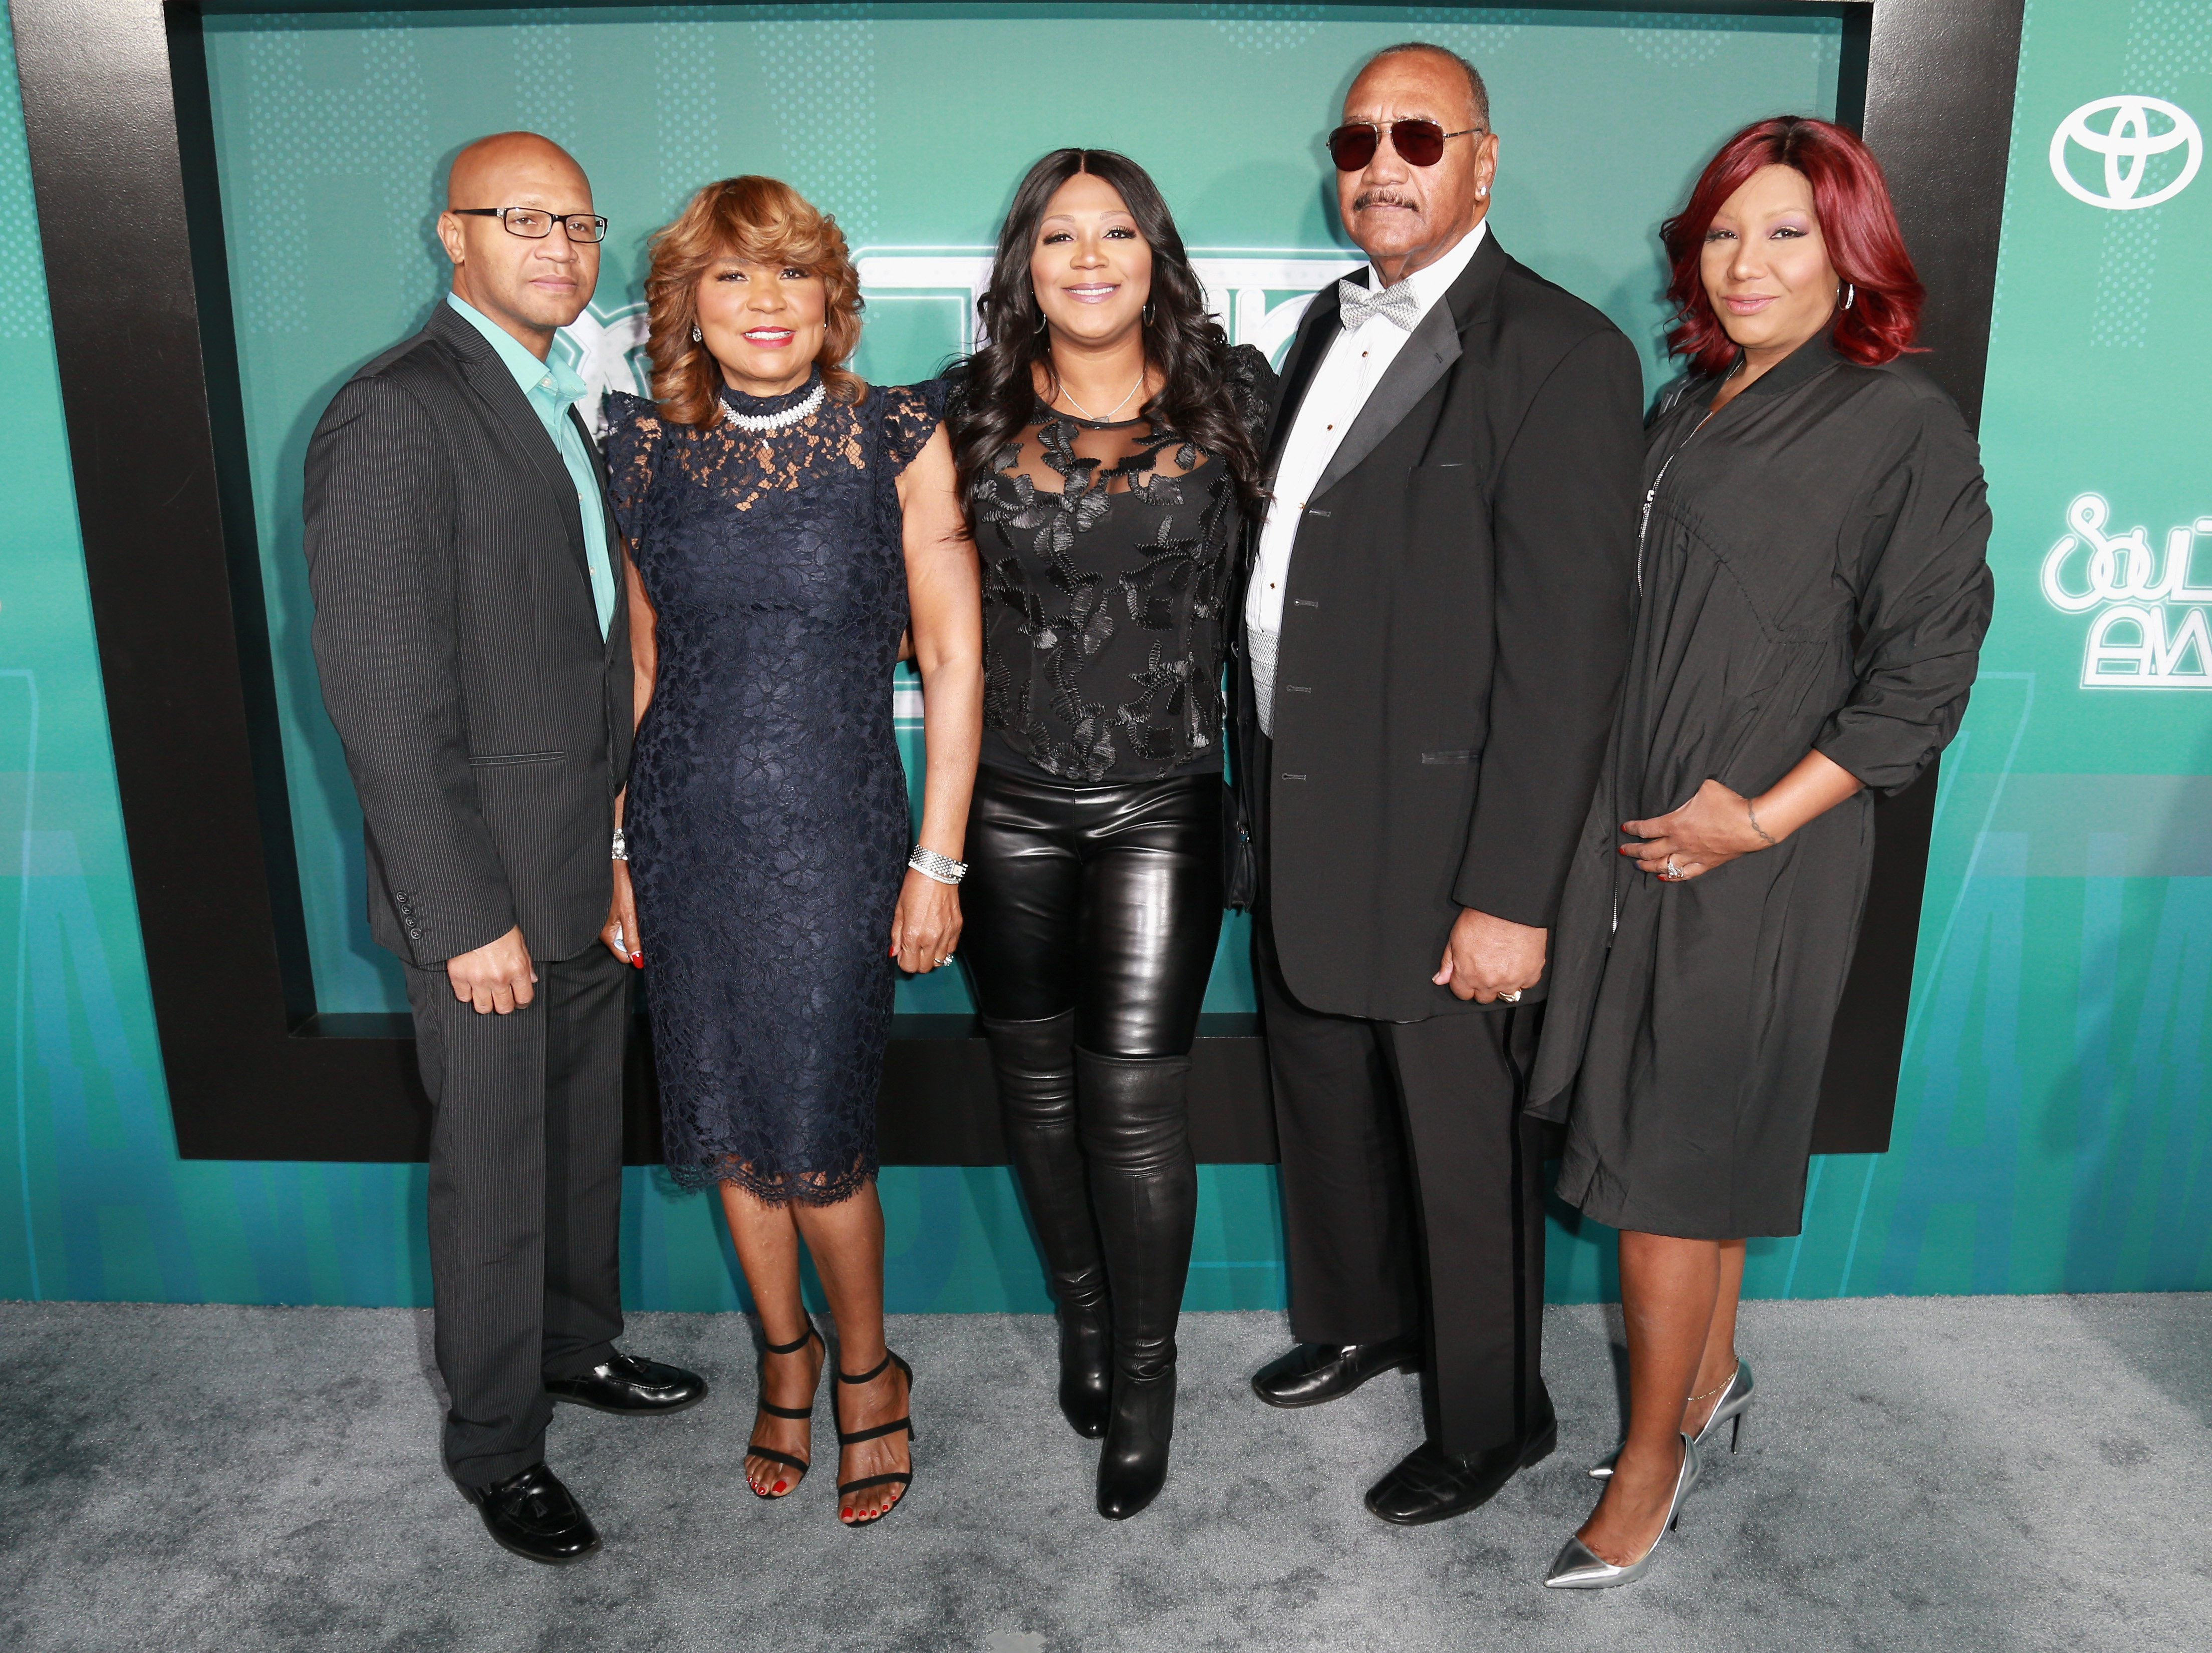 (L-R)Michael Conrad Braxton Jr., Evelyn Braxton, Trina Braxton, Michael Conrad Braxton, & Traci Braxton at the Soul Train Awards in Las Vegas on Nov. 5, 2017. | Photo: Getty Images